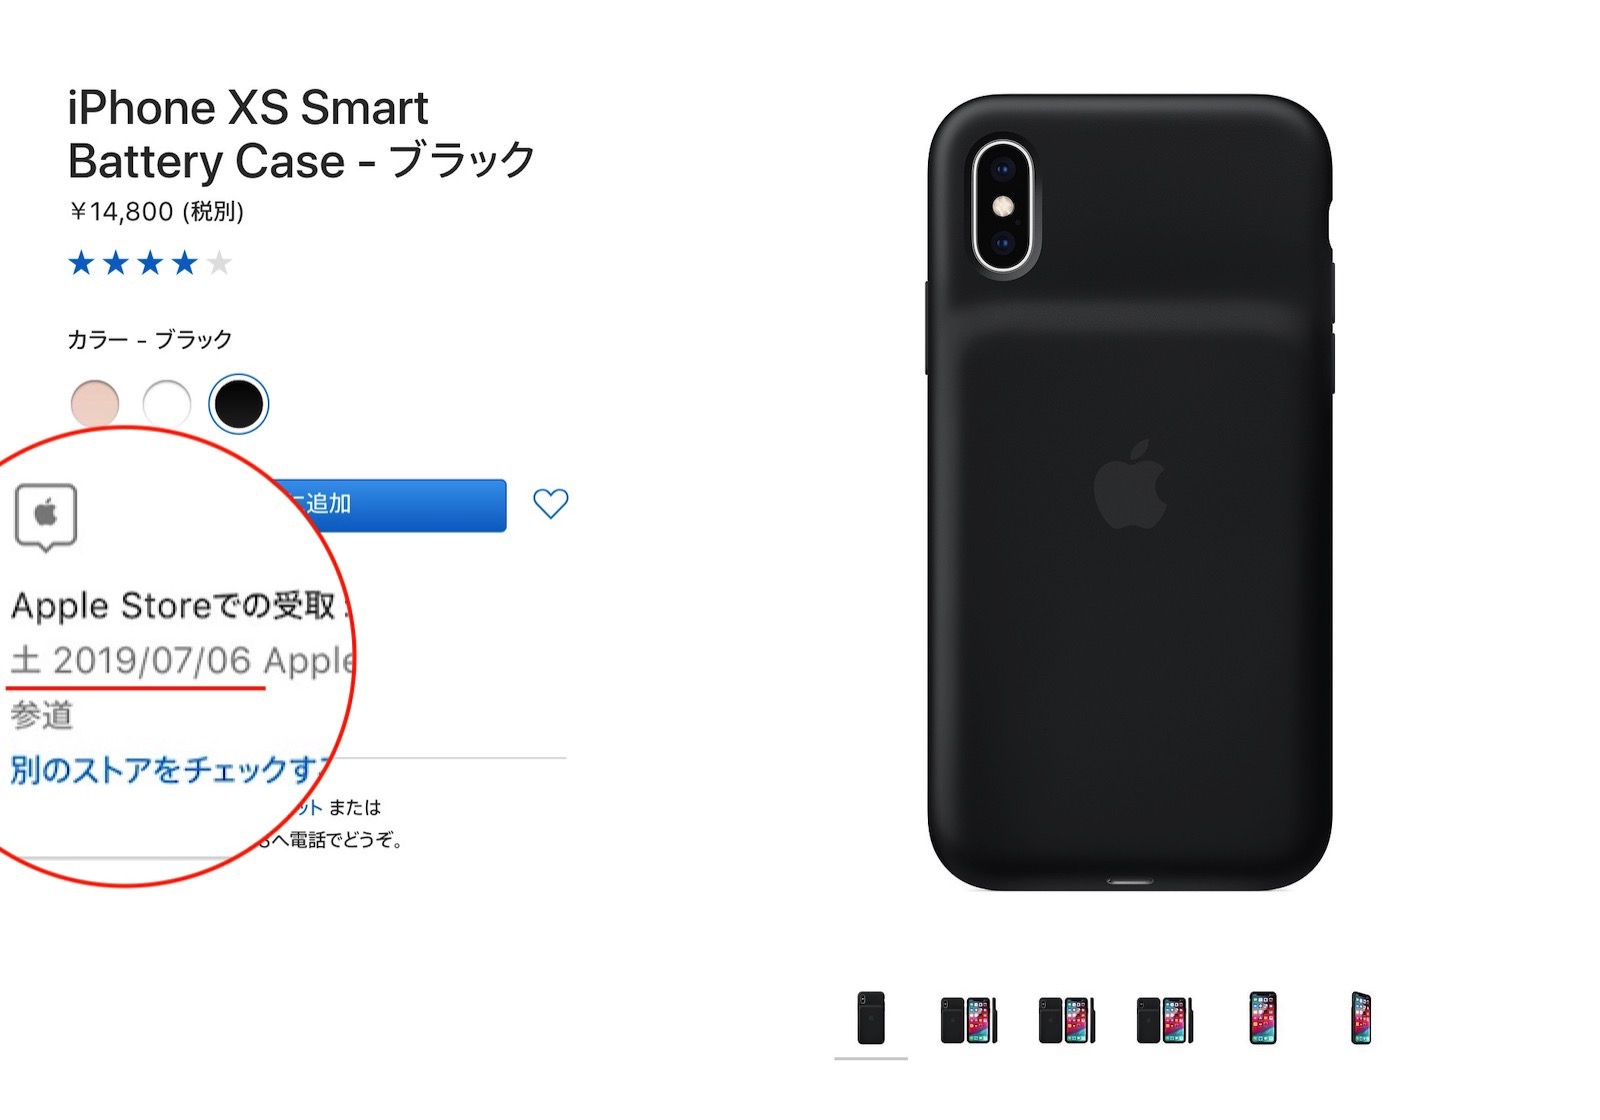 Smart-Battery-Case-not-shpping-until-July.jpg